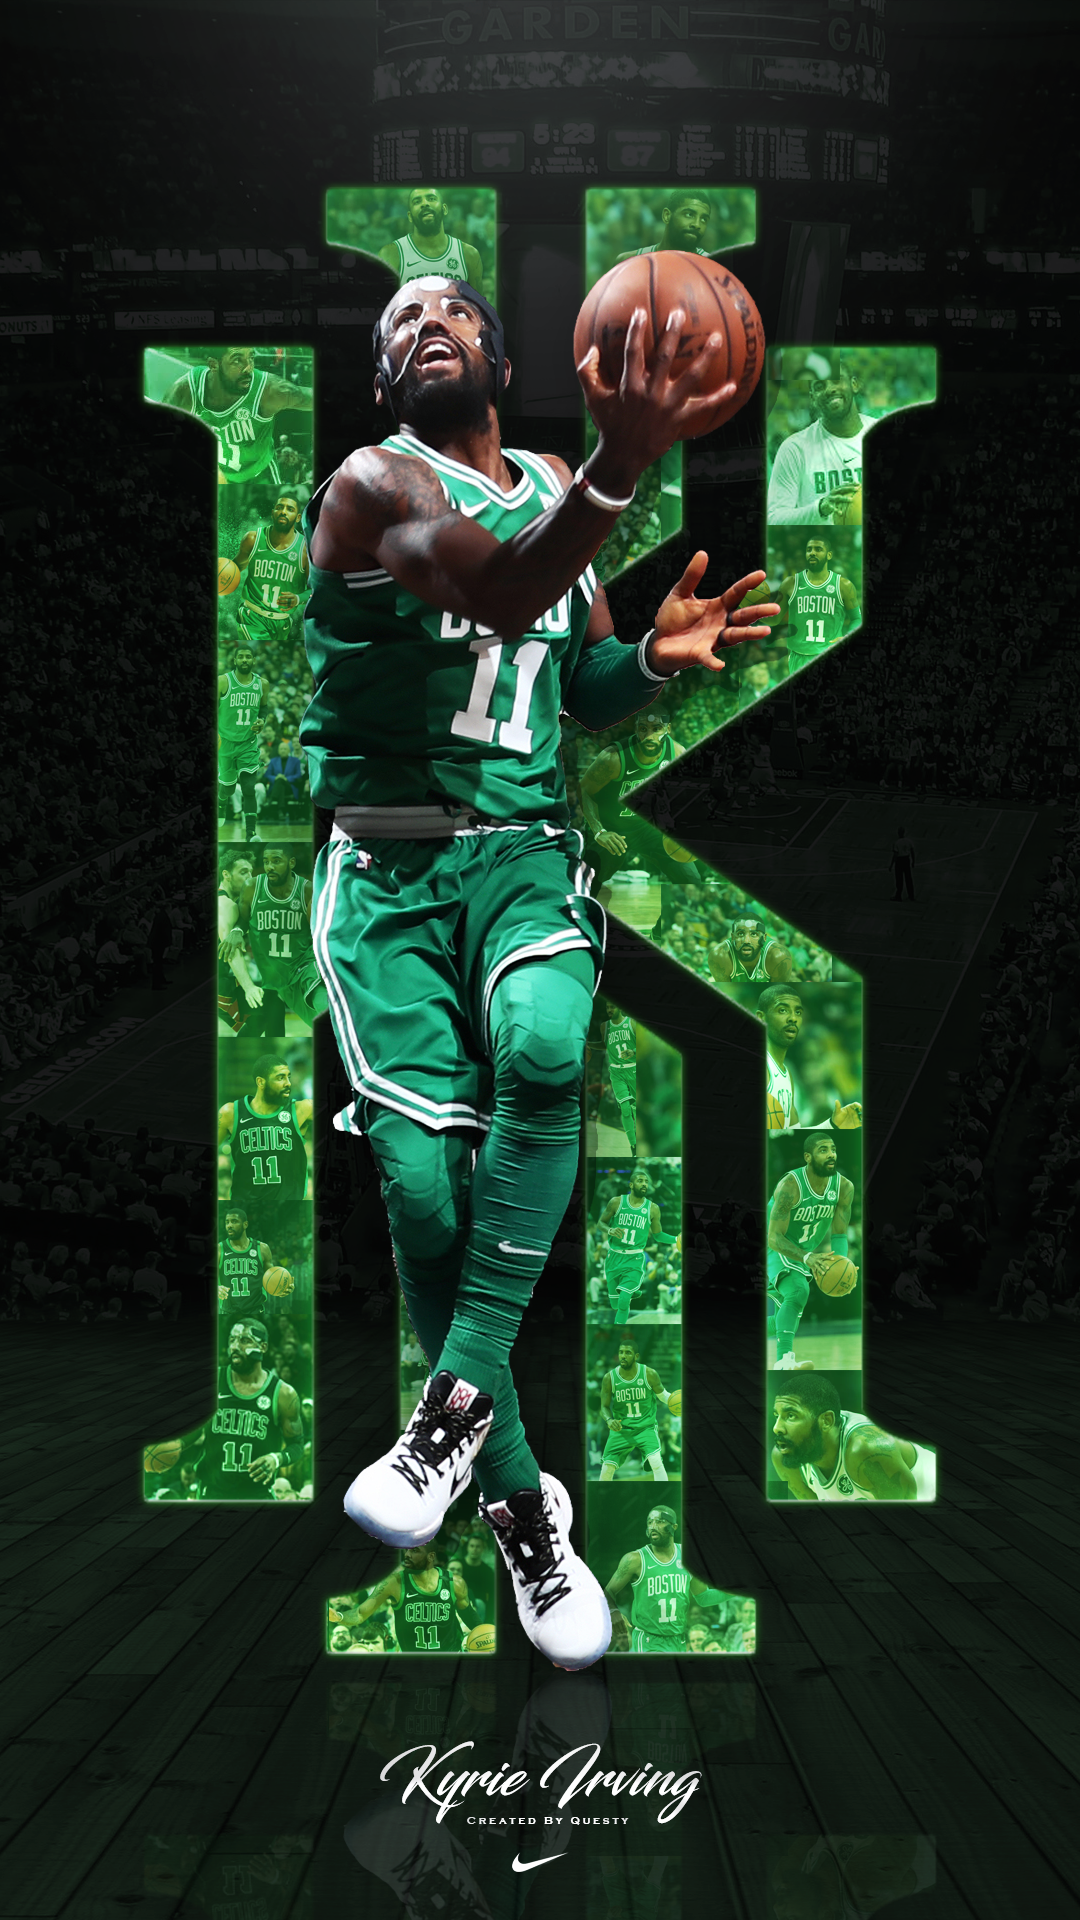 1080x1920 Kyrie Irving Celtics iPhone Wallpaper. Created by @QuestyTv ...